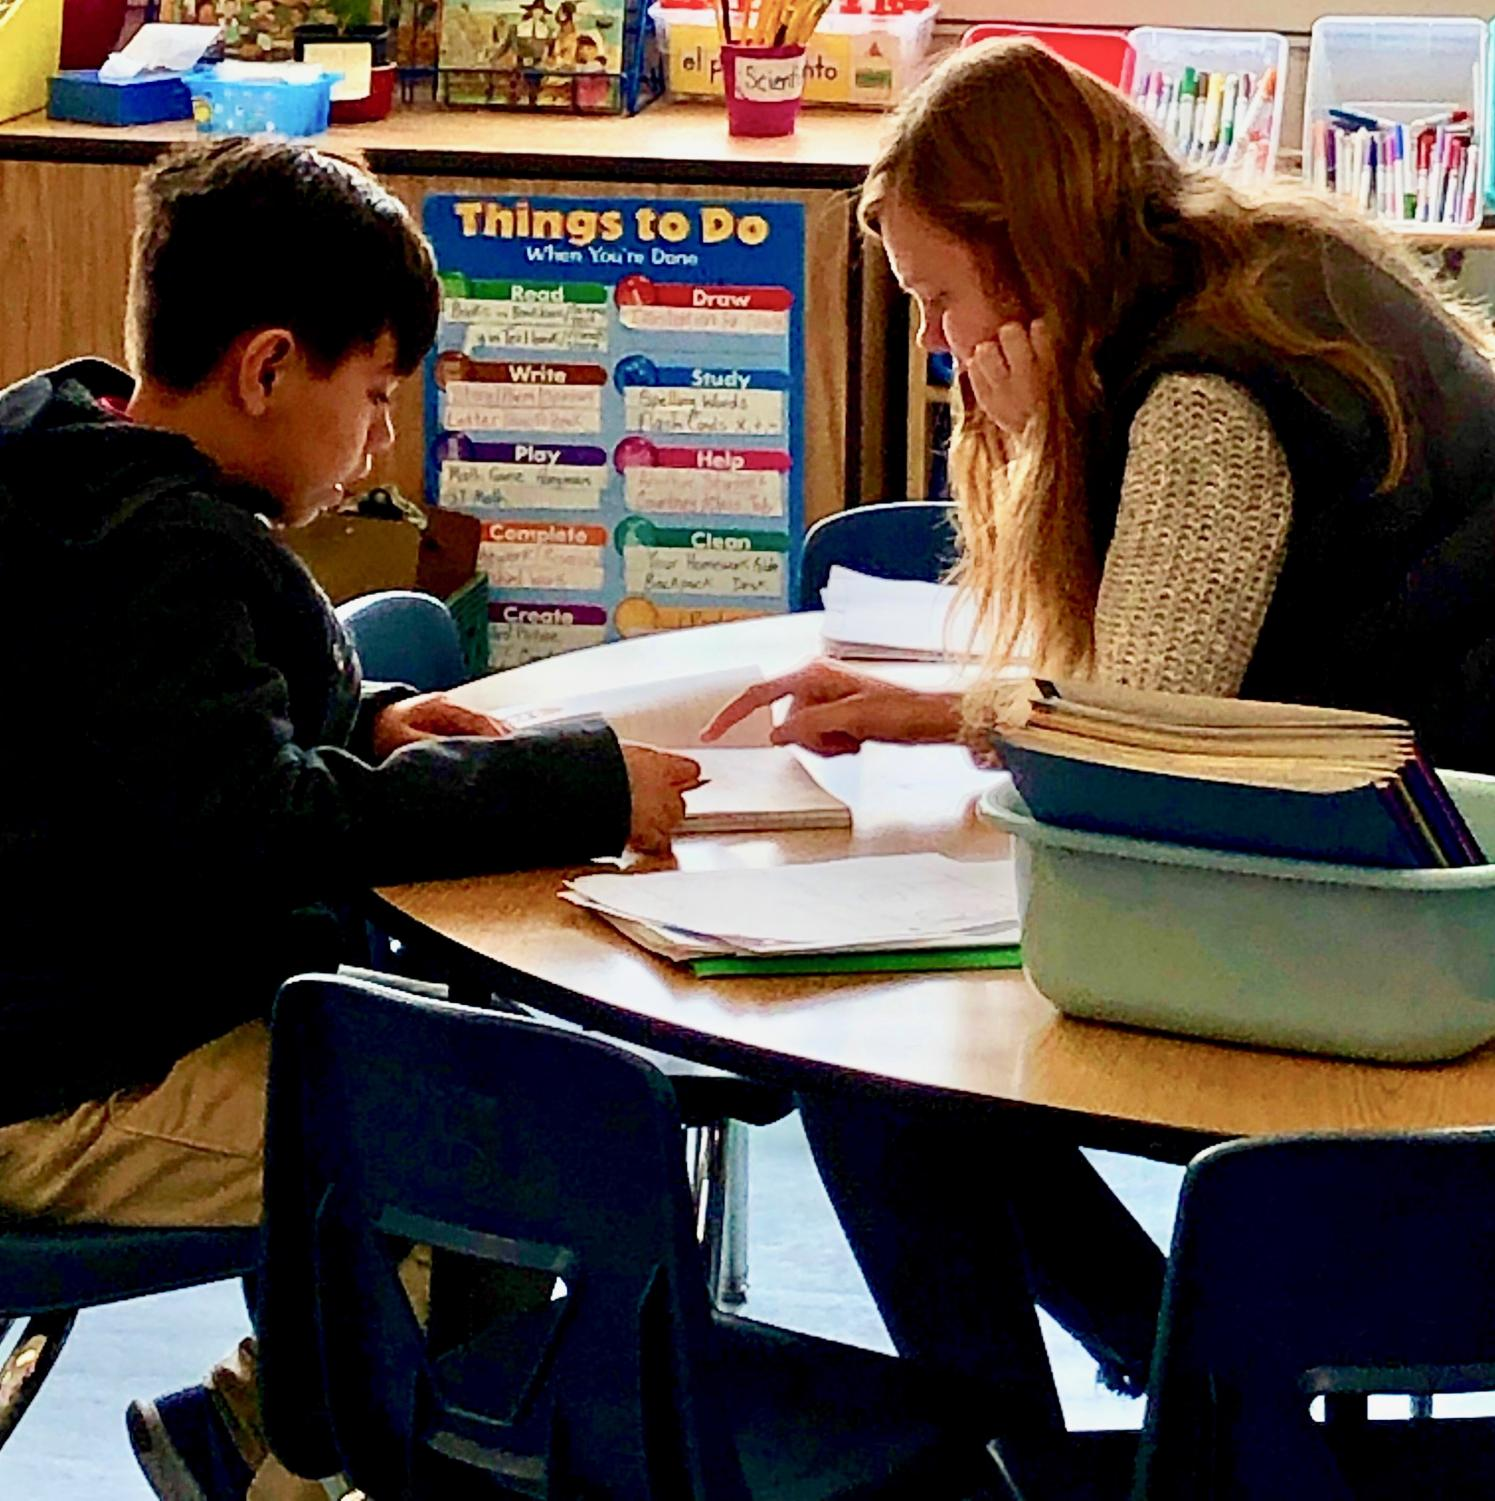 Senior Molly Brown tutors a student at the Spring Valley Science Academy during her B Period Social Awareness & Action class. Students volunteered at organizations of their choosing and completed written reflections on their experience for the class.